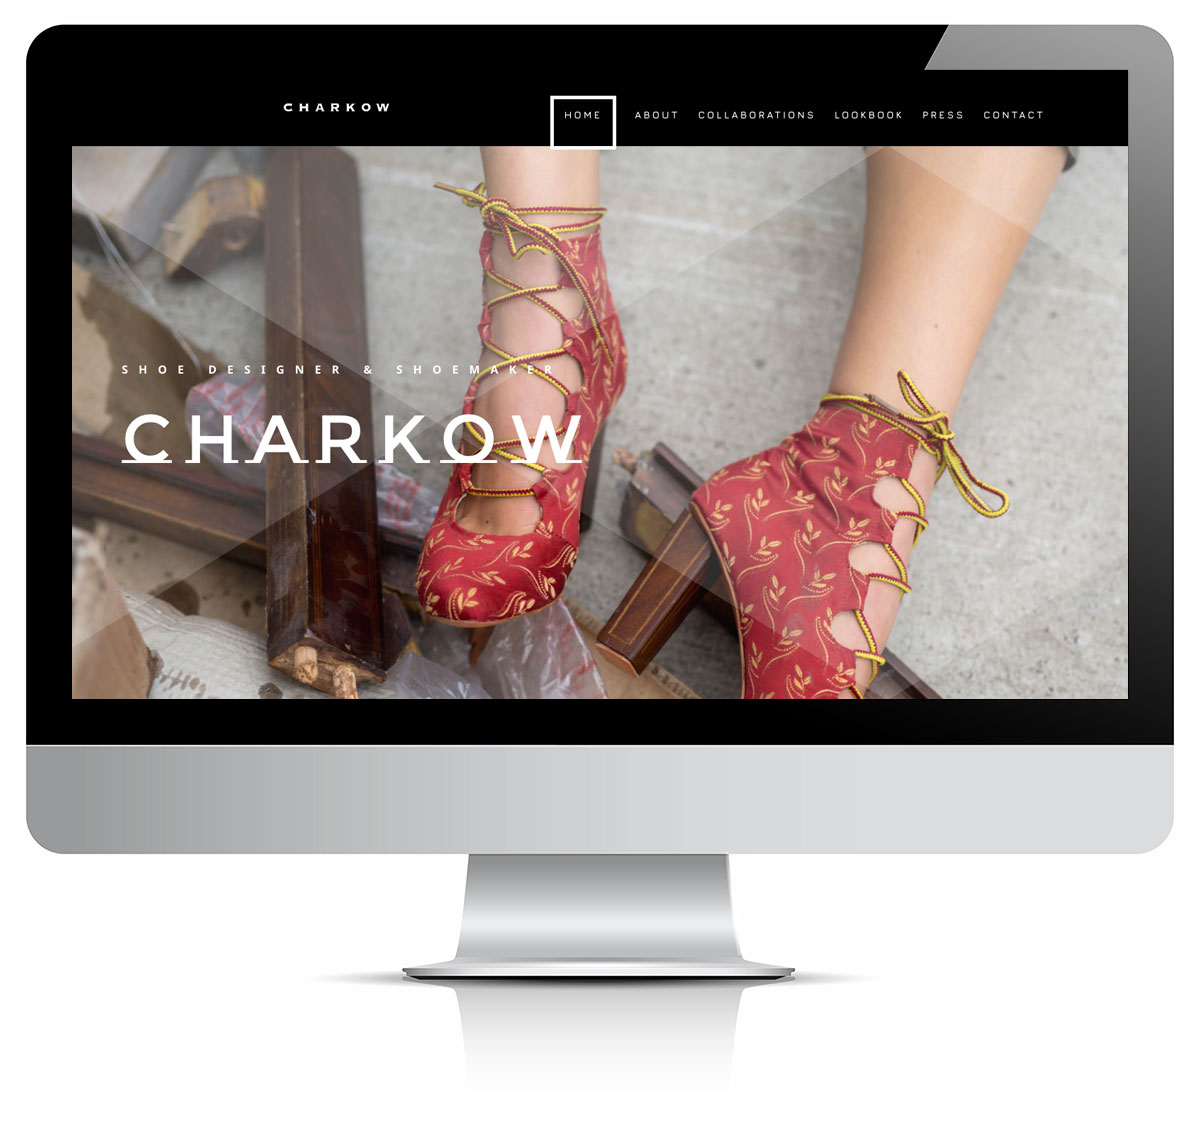 Charkow Shoes - Daniel Charkow